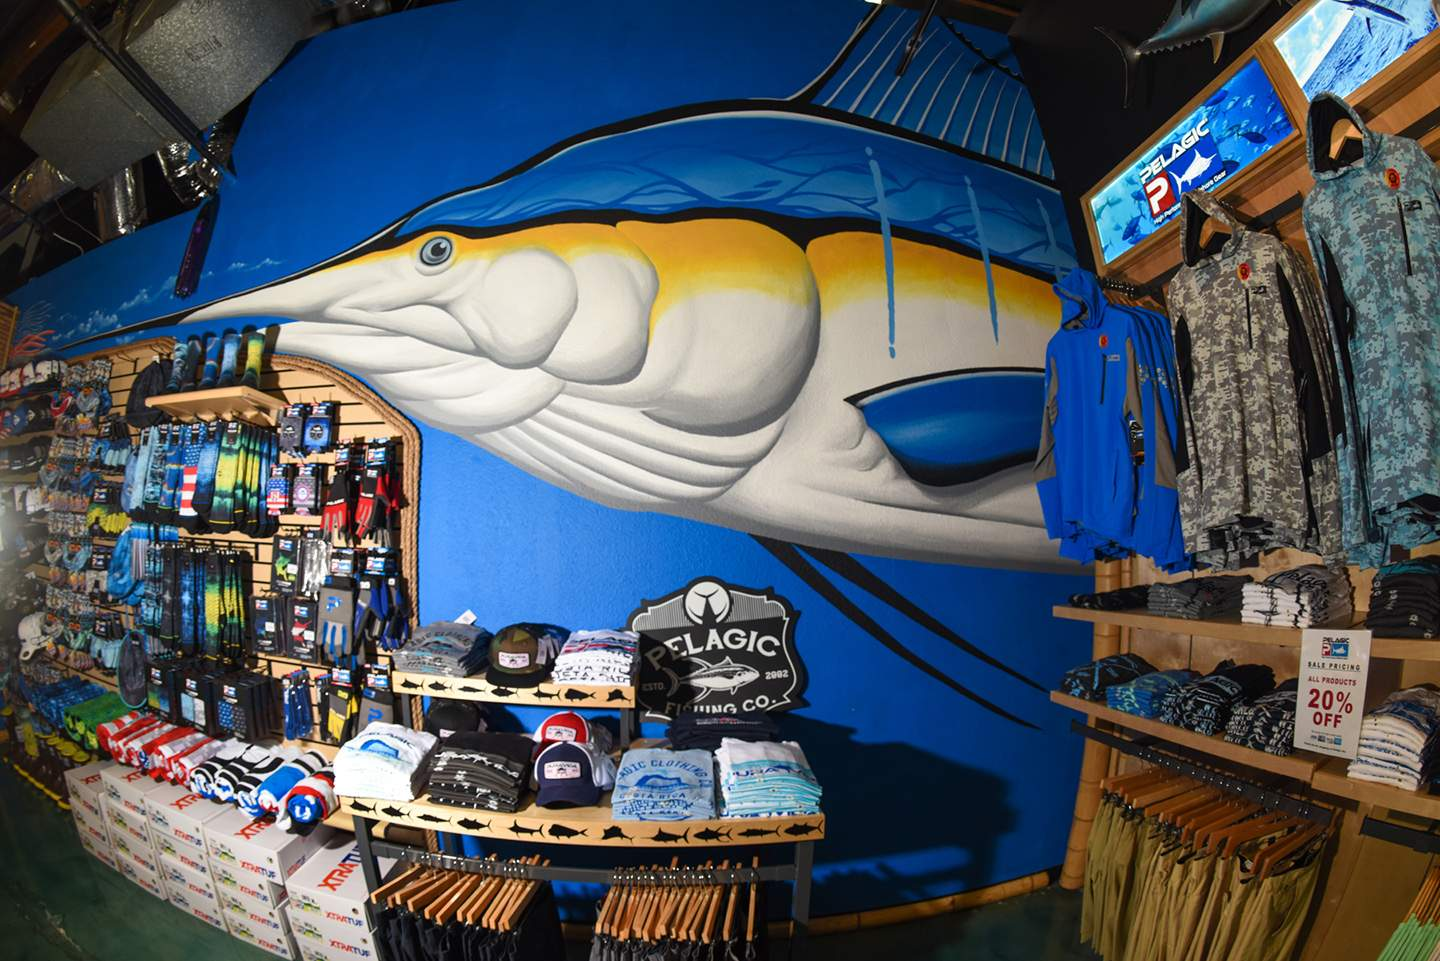 Pelagic California Retail Flagship Store 20